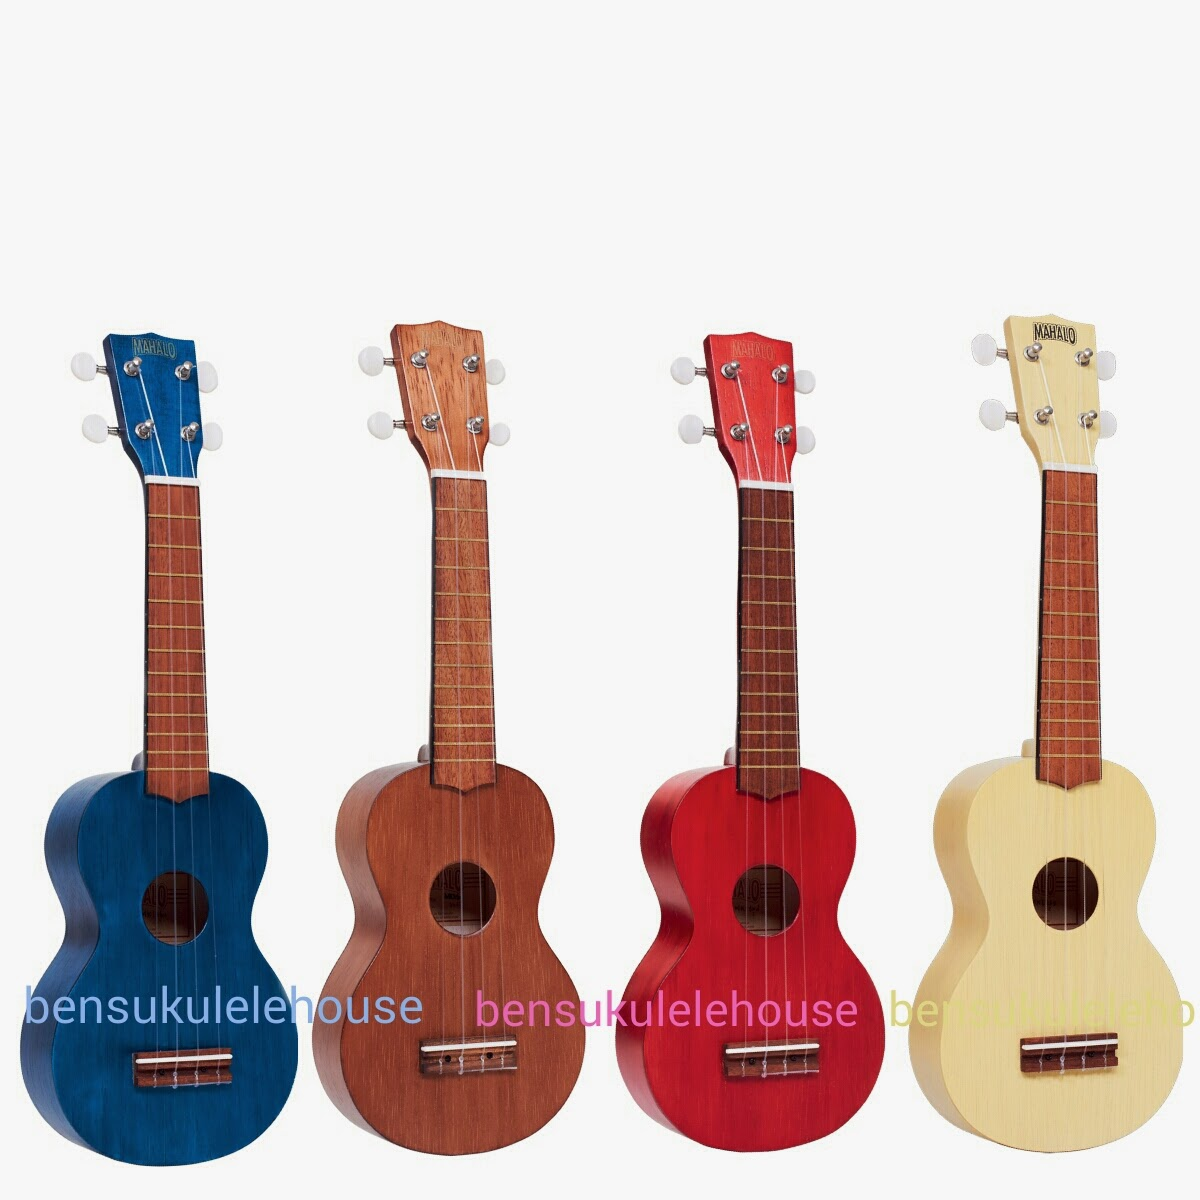 Ben 39 s ukulele house new mahalo soprano ukulele mk1 for Housse ukulele